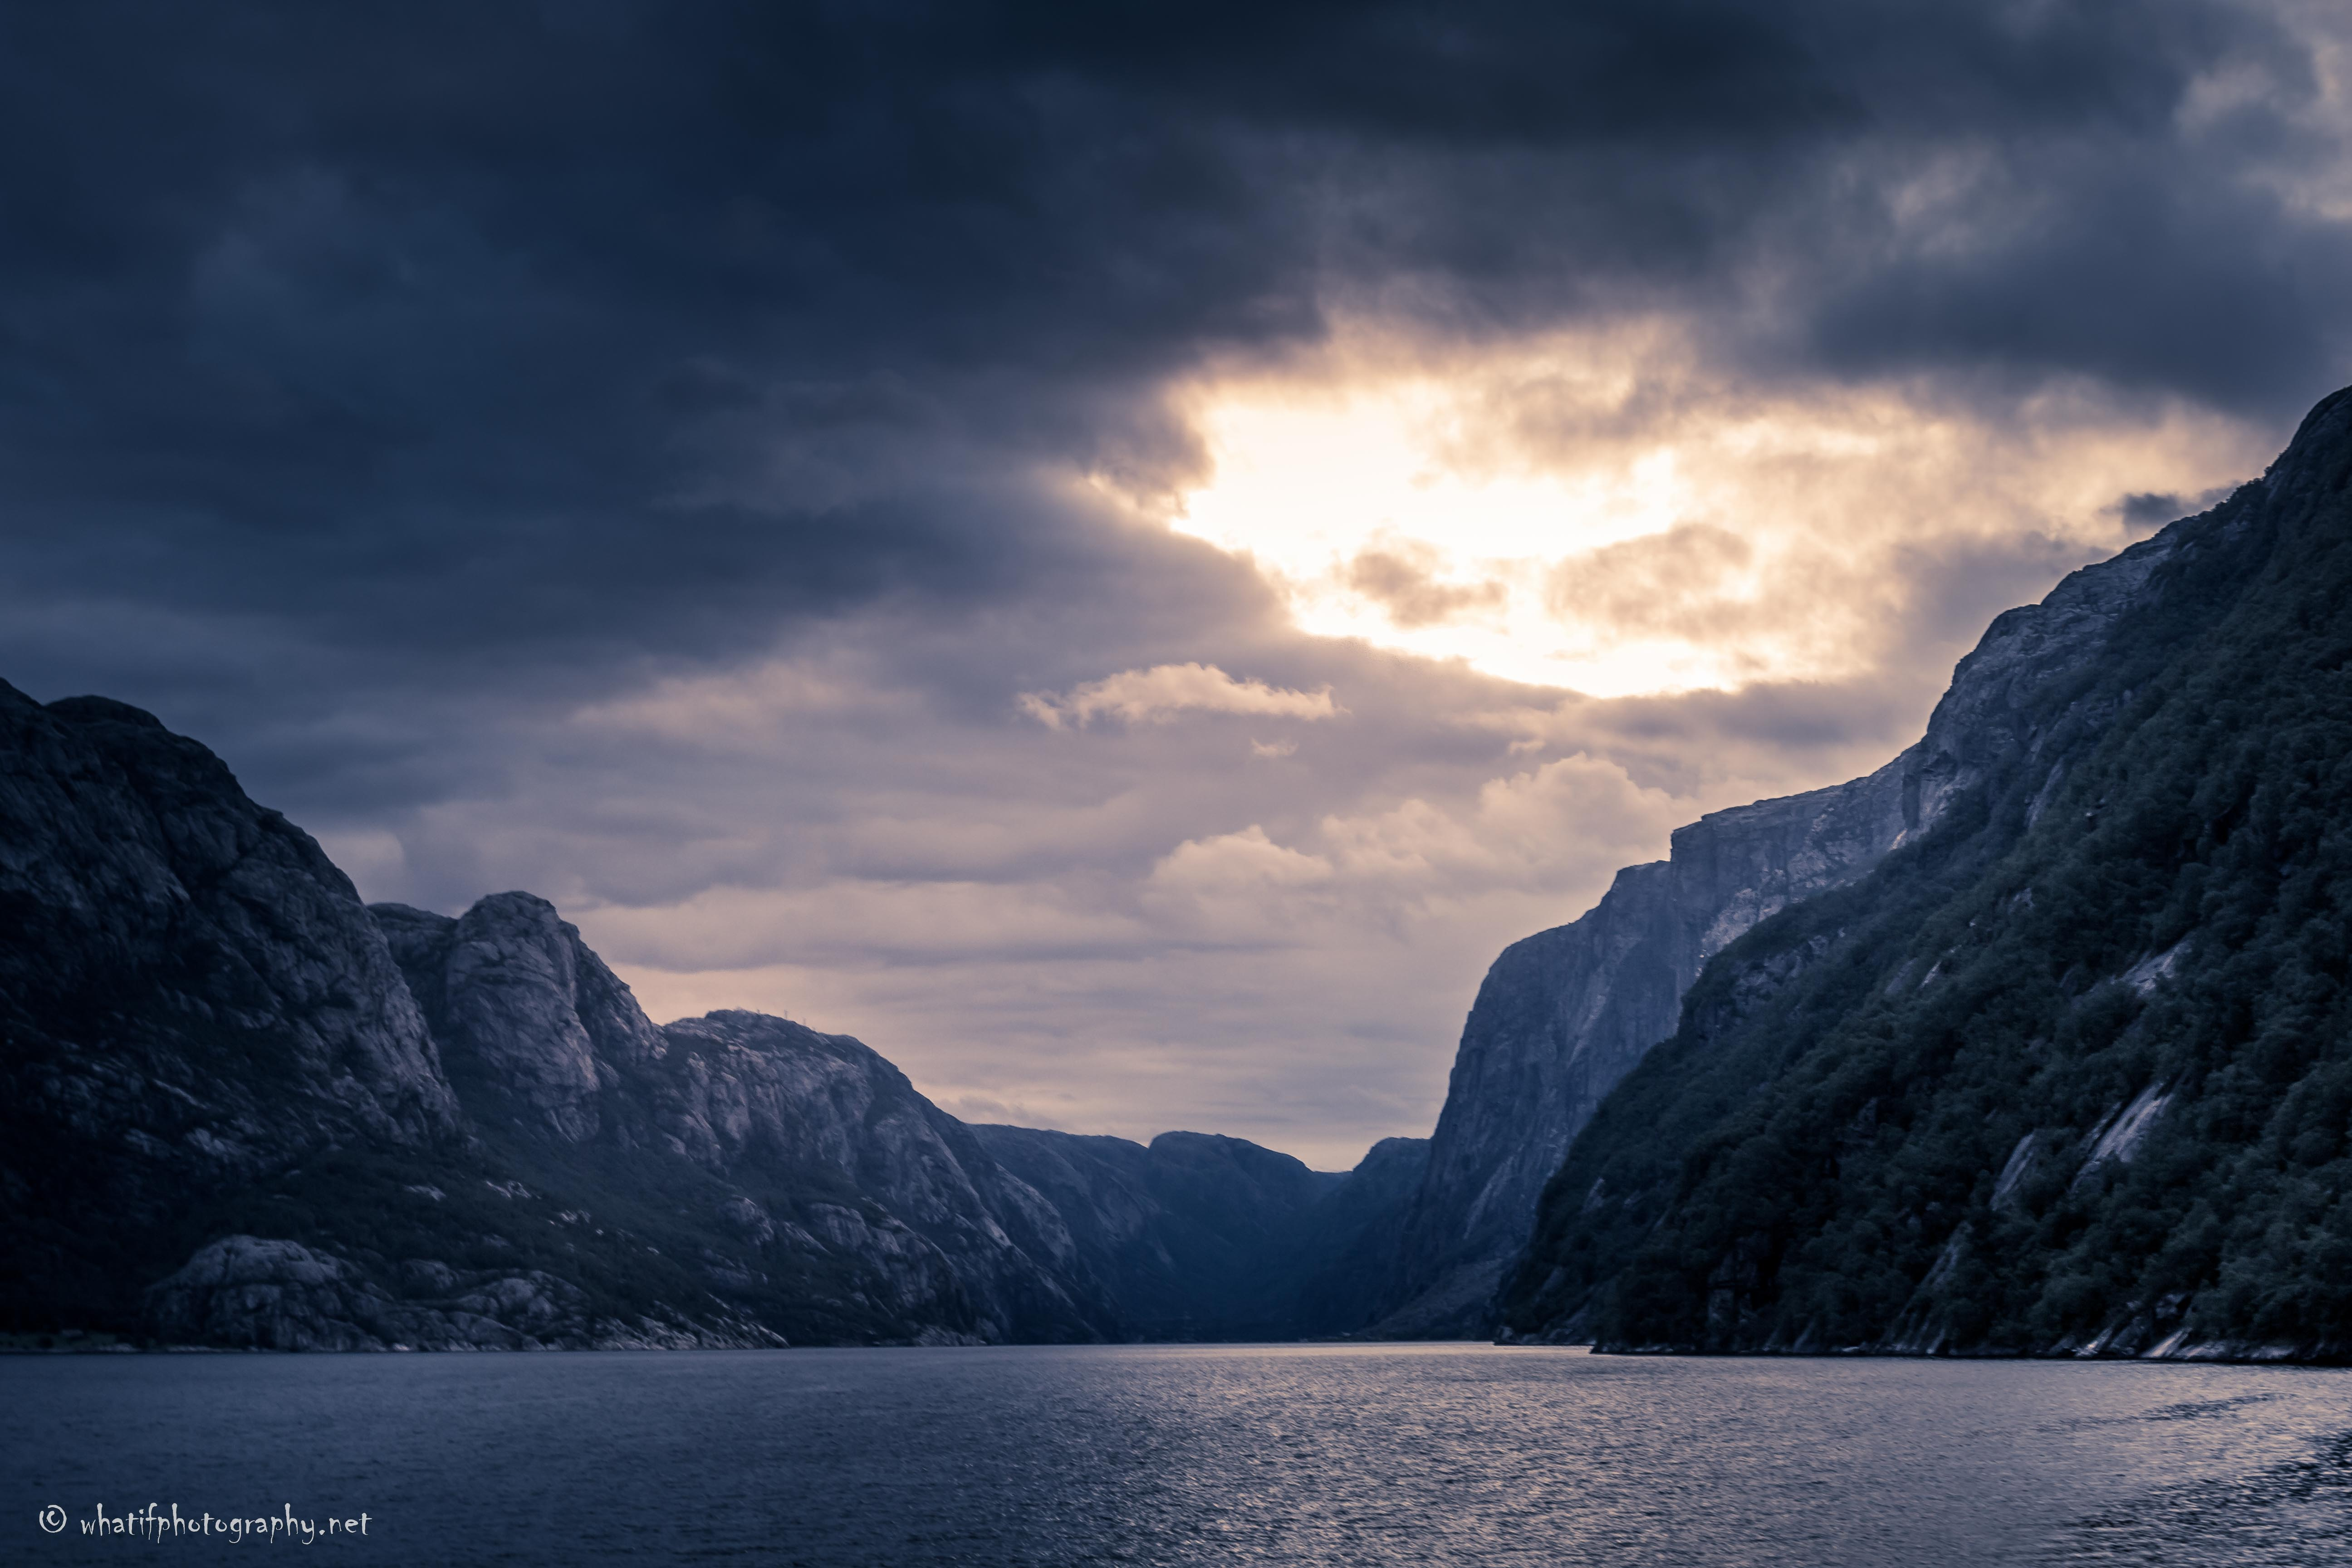 Boating through the fjords